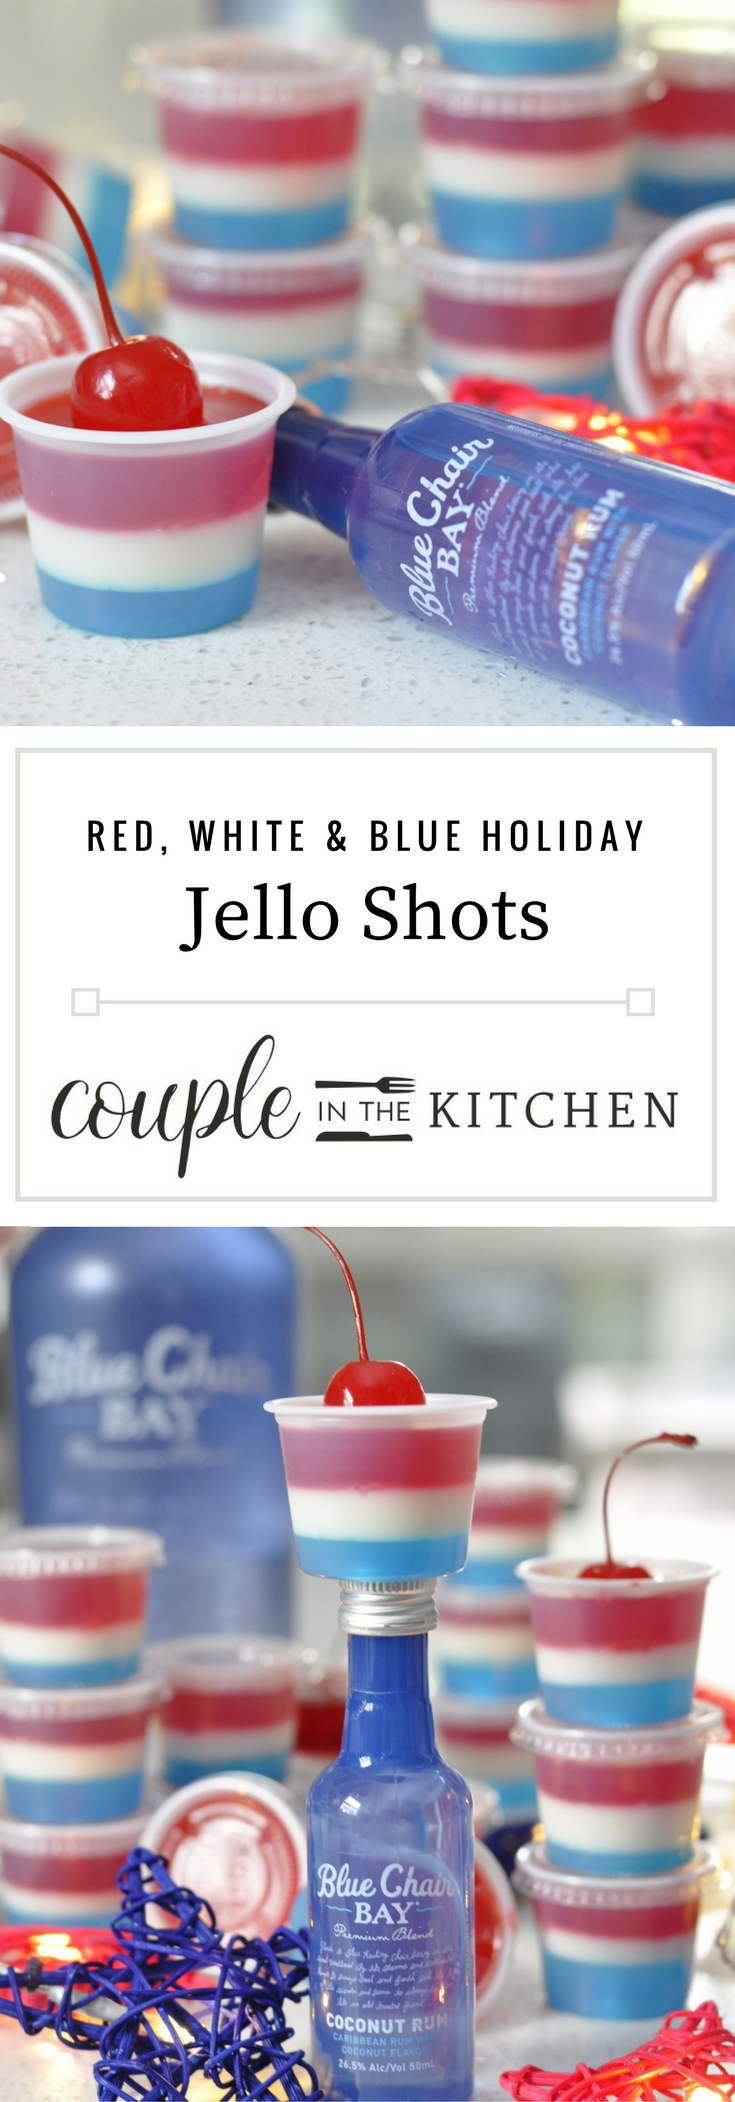 Red White and Blue Jello Shots | coupleinthekitchen.com